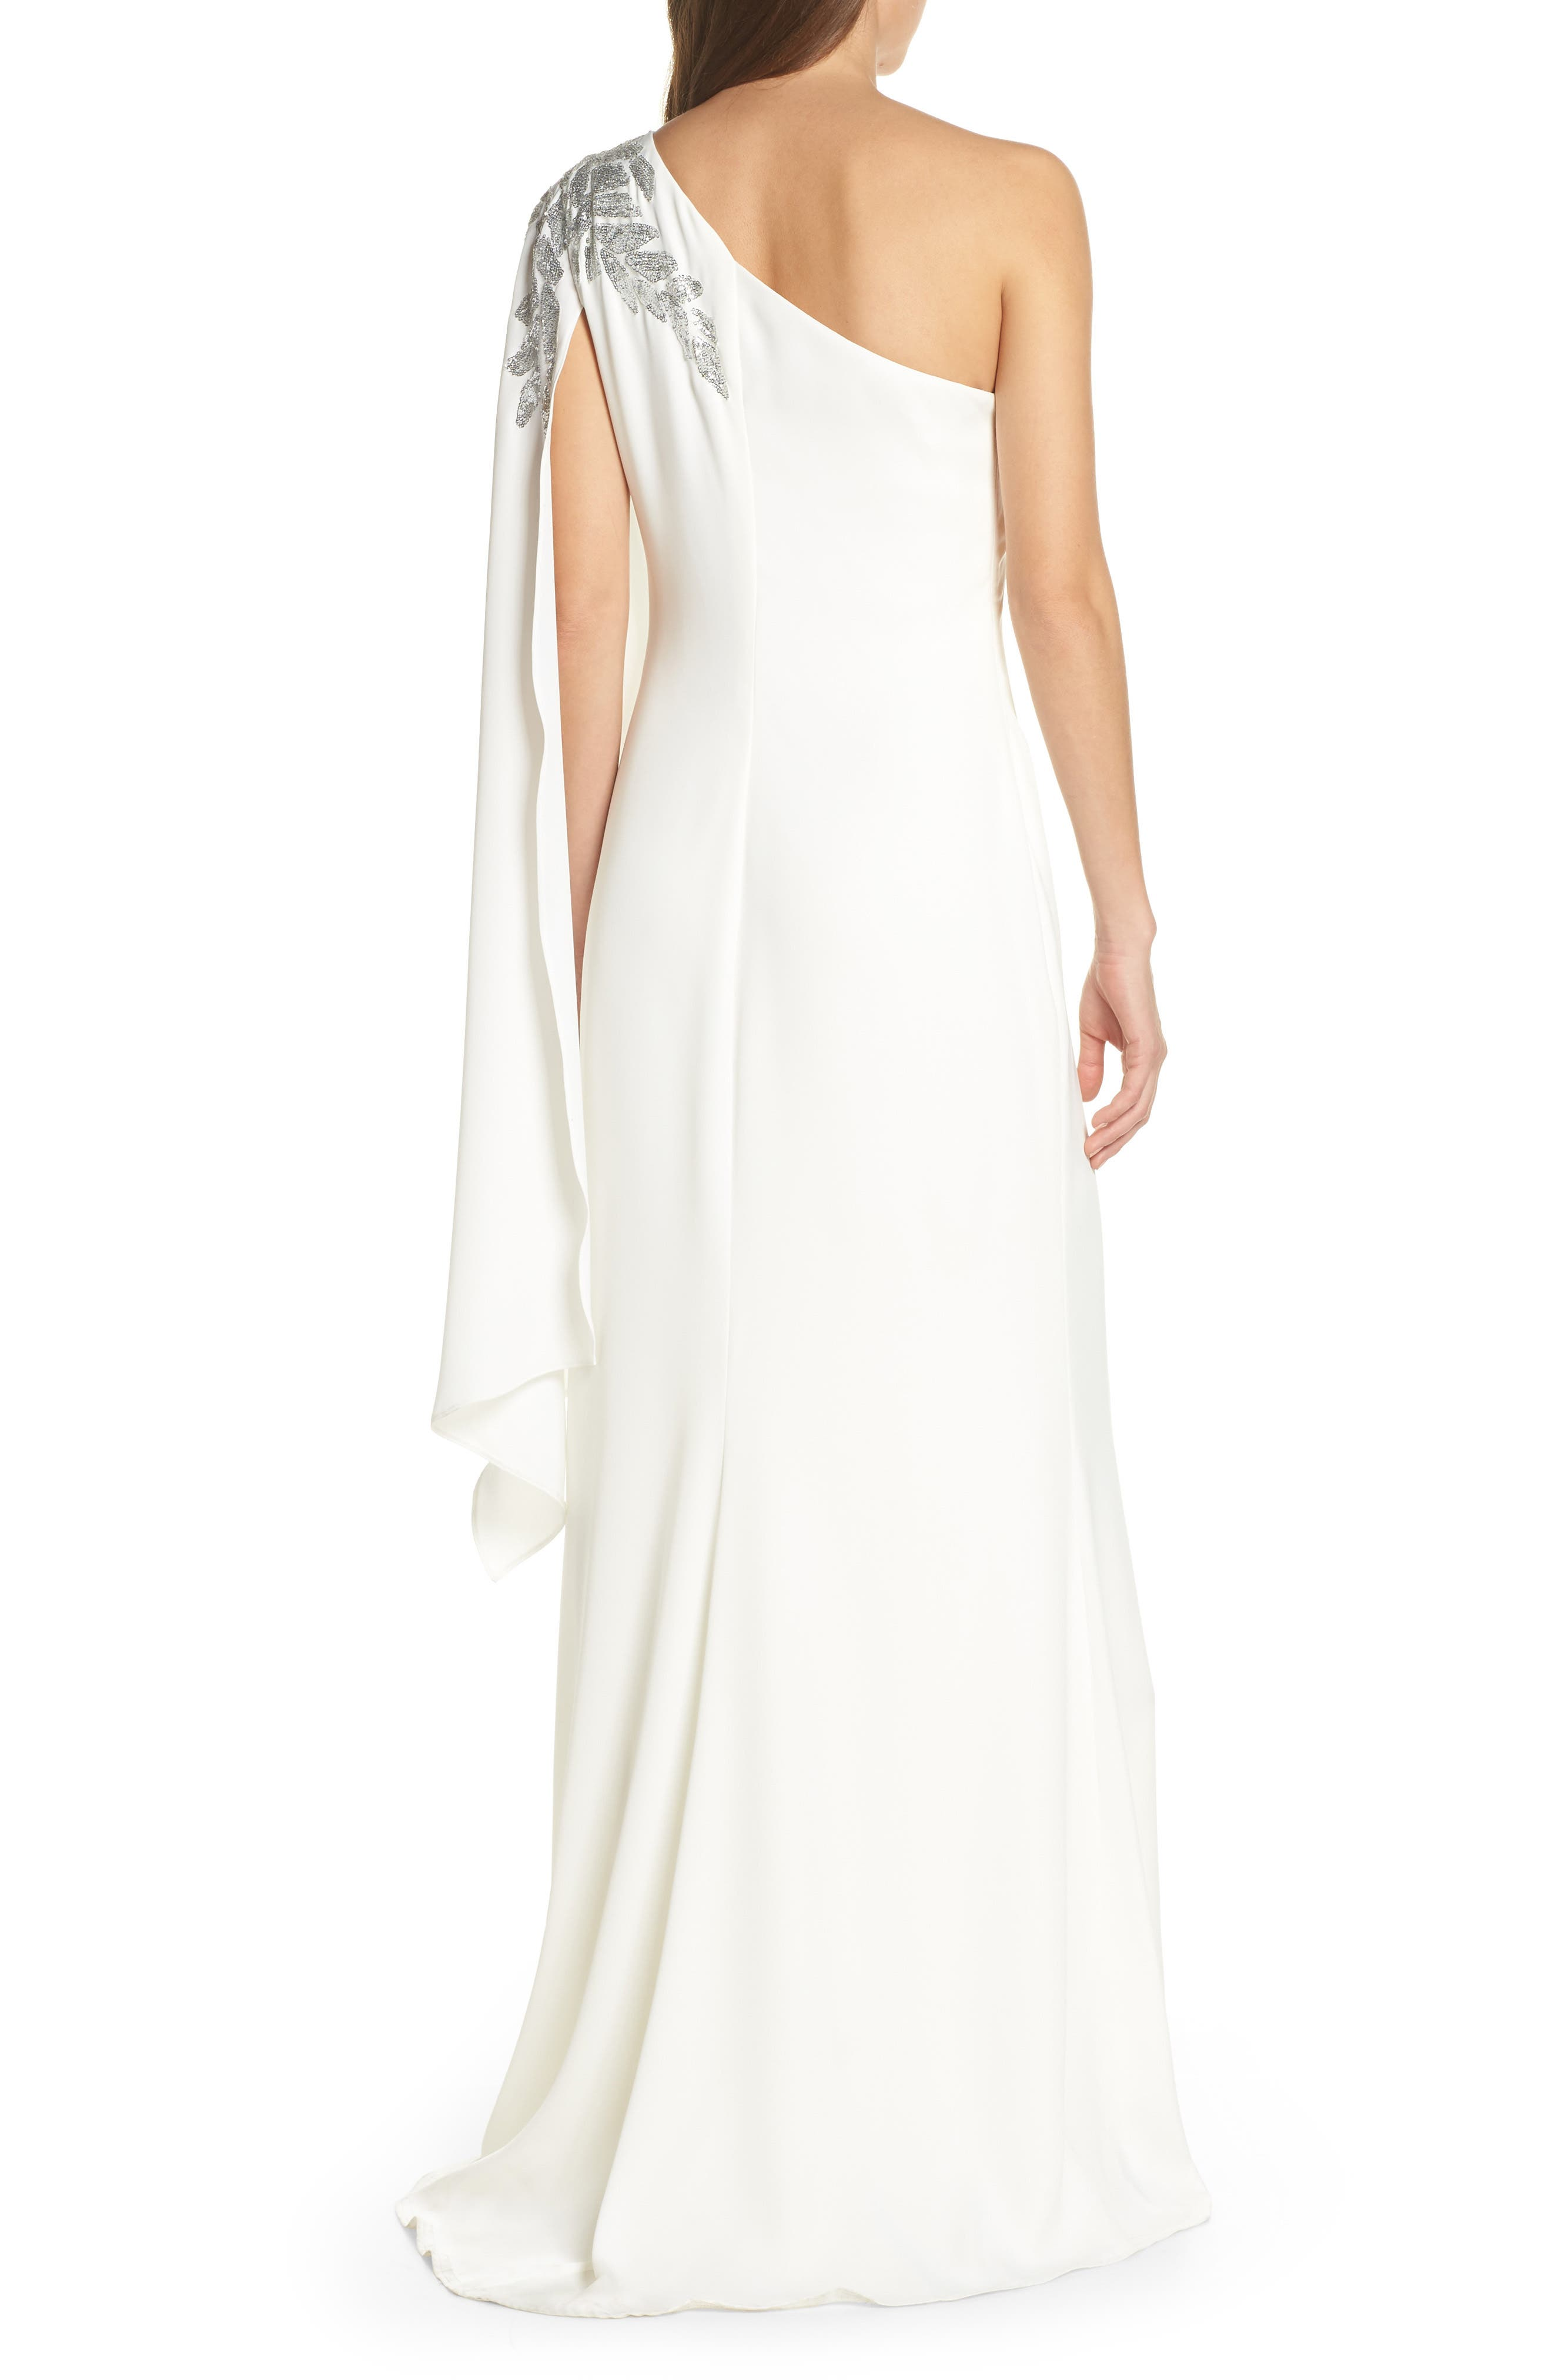 TADASHI SHOJI,                             Cape Sleeve Crepe Evening Dress,                             Alternate thumbnail 2, color,                             IVORY/ SILVER